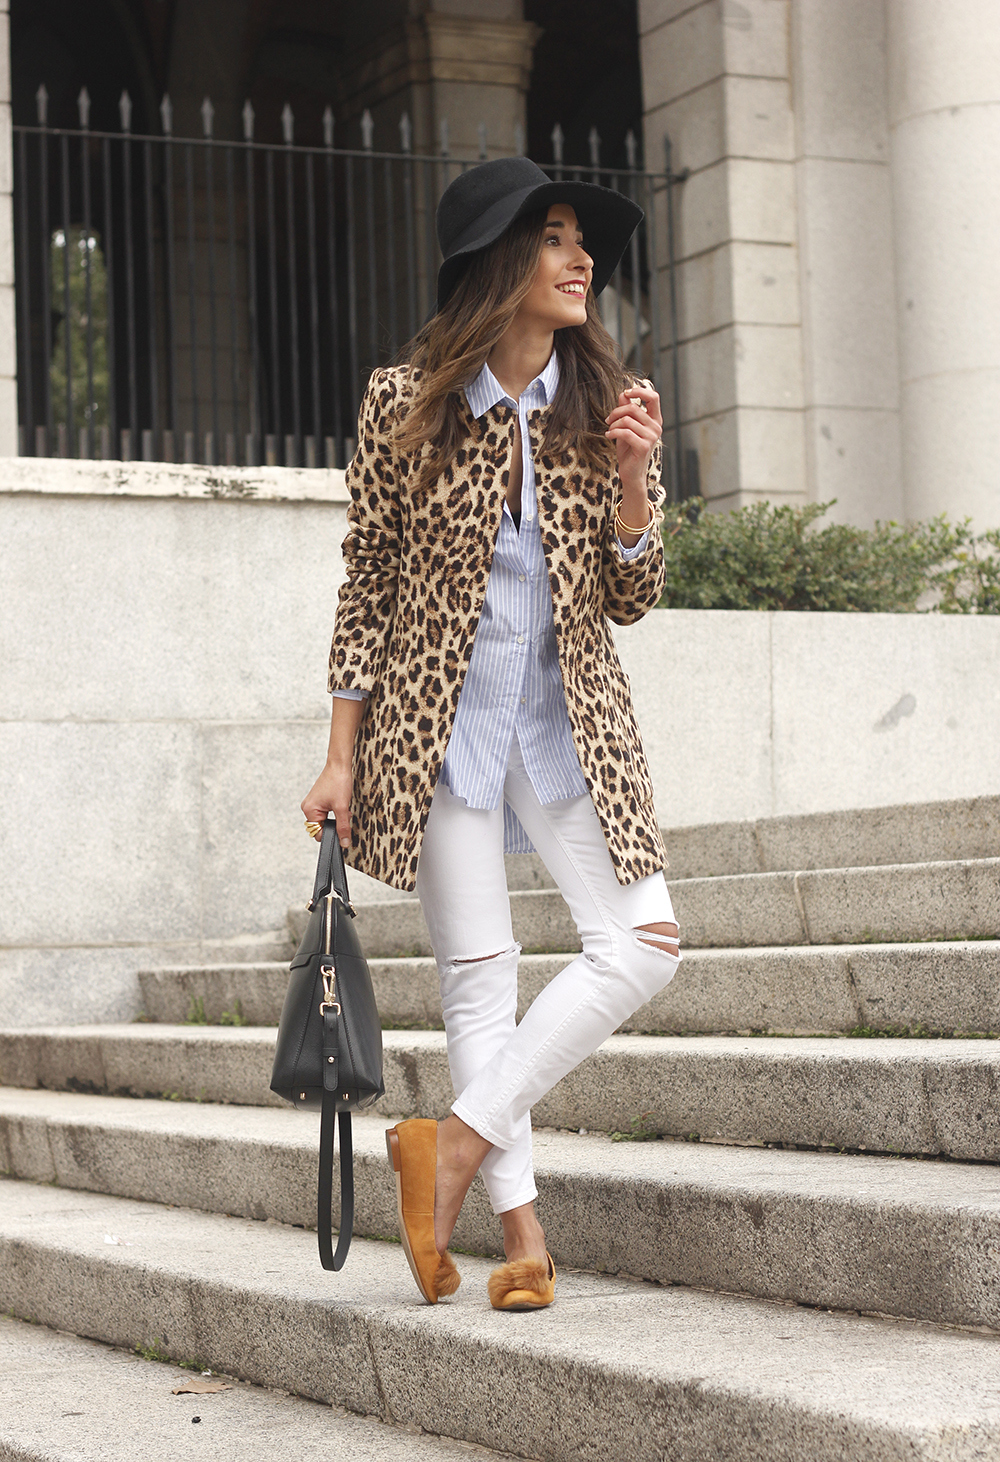 Leopard print coat white ripped jeans flats accesories black hat furla bag aristocrazy ring outfit style10